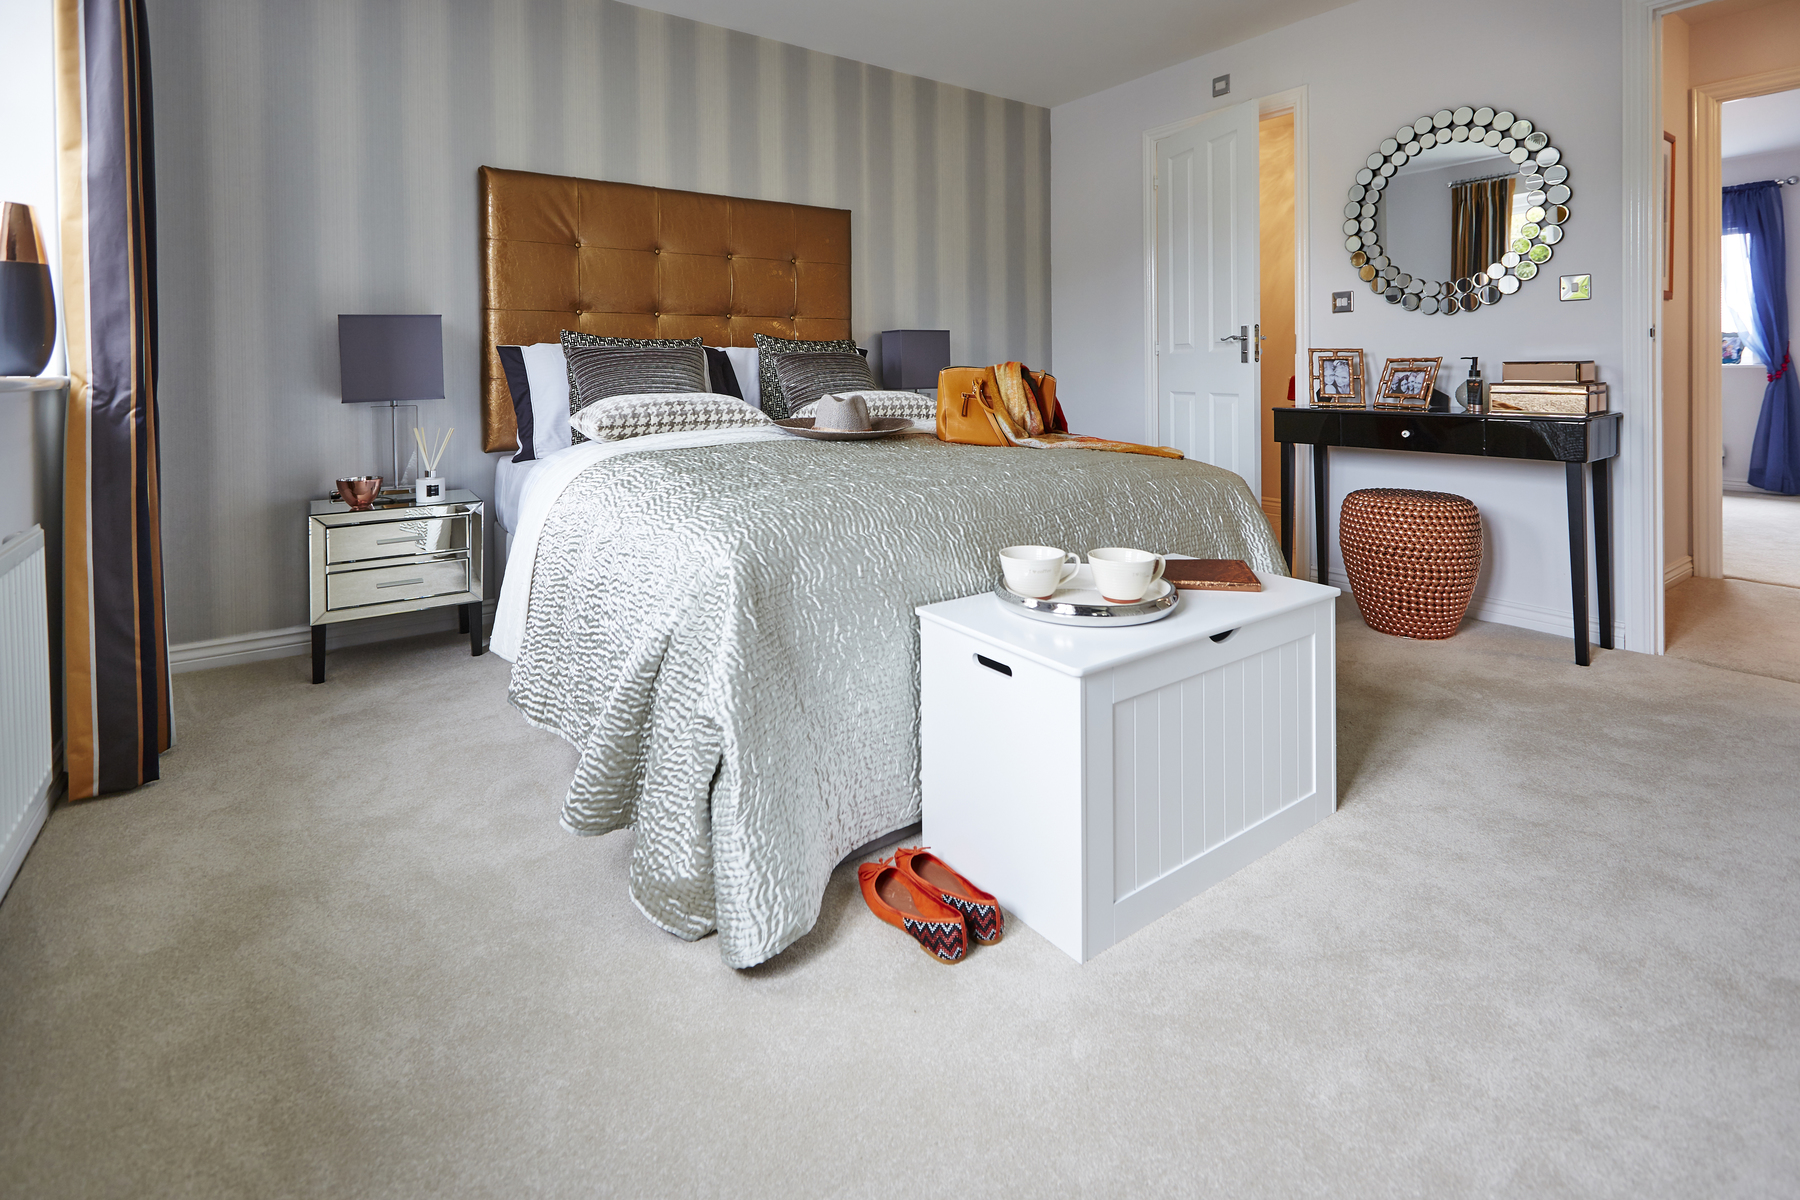 tw_wmids_bowbrook_hartlebury_pd411_haddenham_bedroom_2